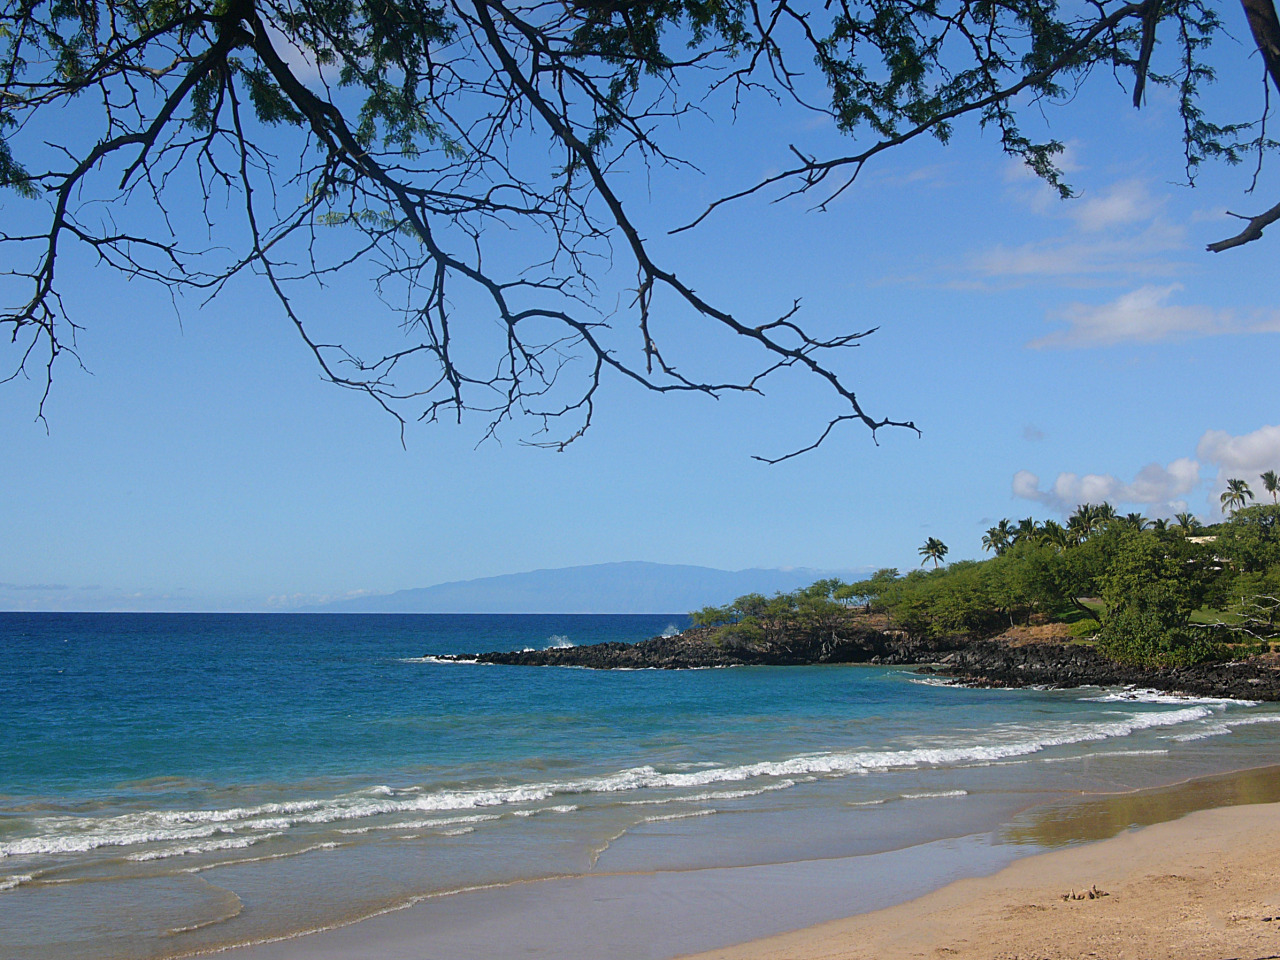 A view from my hammock in a tree at Hapuna Beach, looking northwest to Maui in the distance.